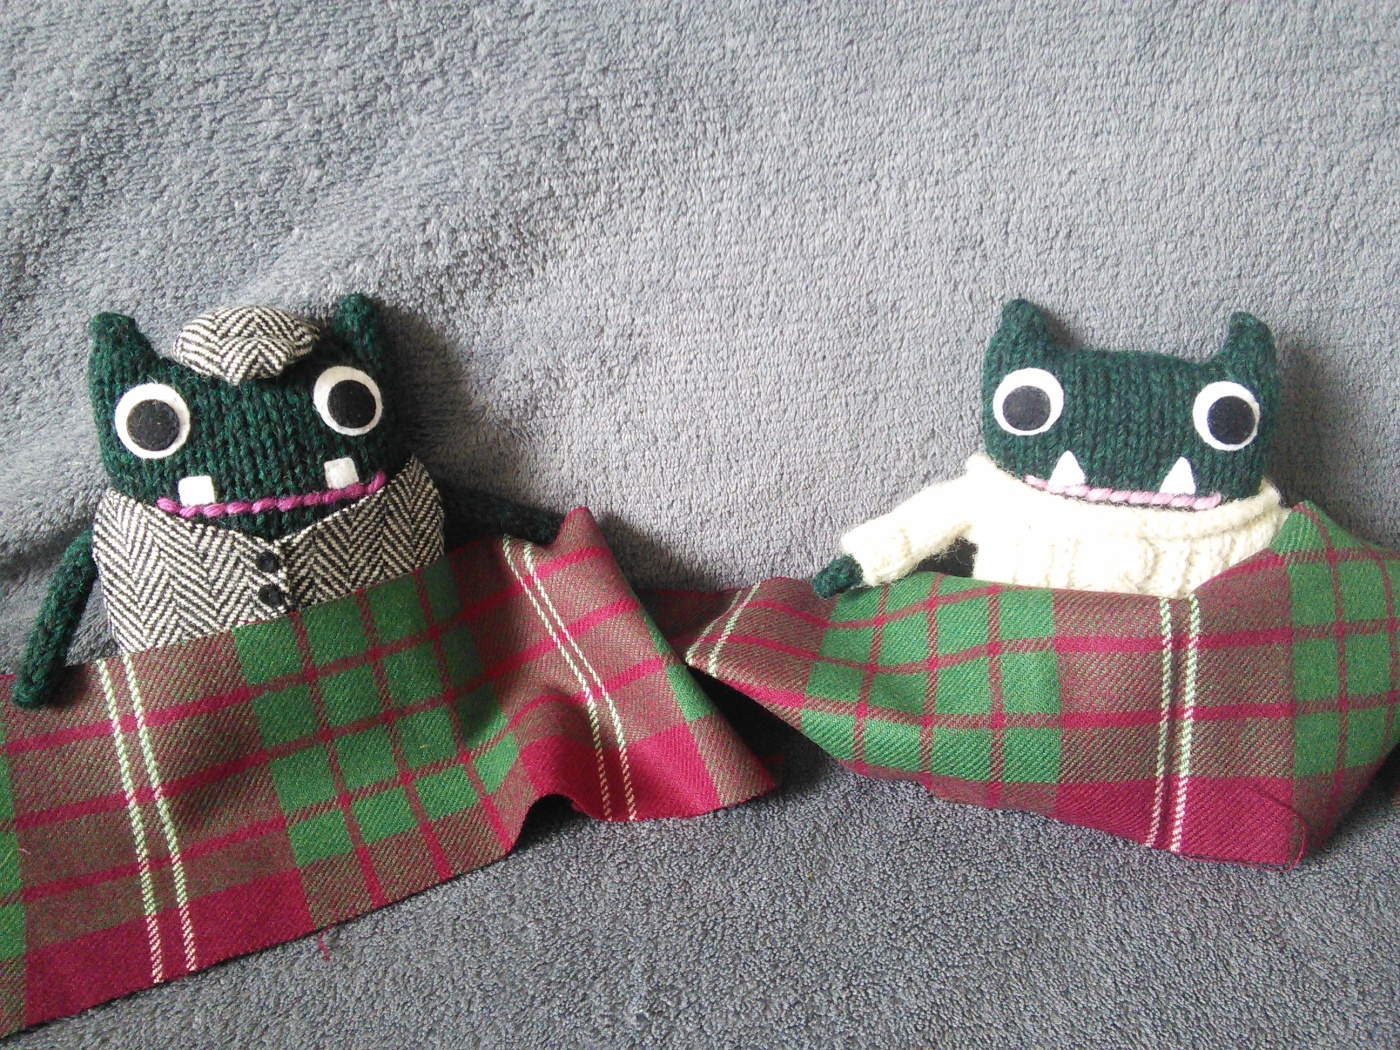 Paddy and Plunkett's Gift From Scotland - CrawCrafts Beasties